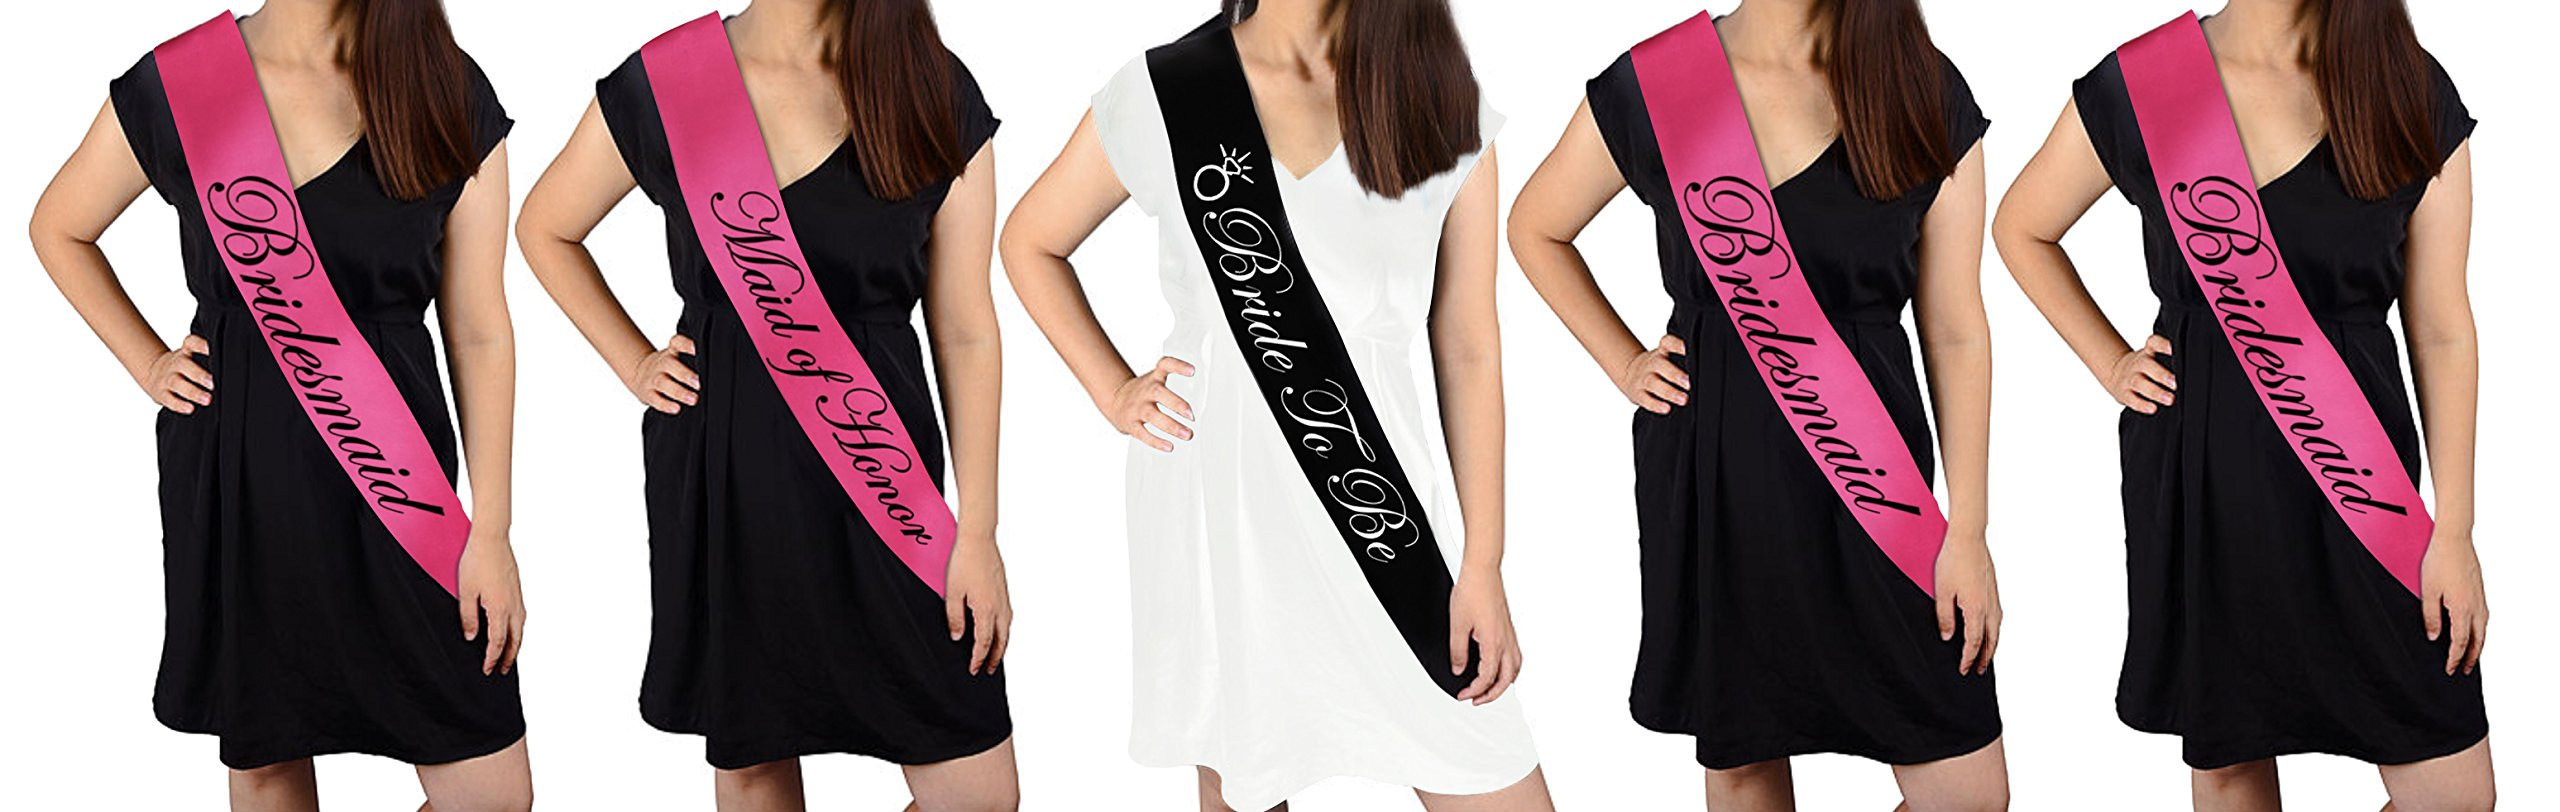 BACHELORETTE PARTY SASH SET(PINK):Bride to be sash,Maid of honor sash,3 Bridesmaid sash/Team Bride free Bride/Bride tribe tattoos, for Bridal shower,Engagement party favors &supplies (pink,black) by Gemich (Image #1)